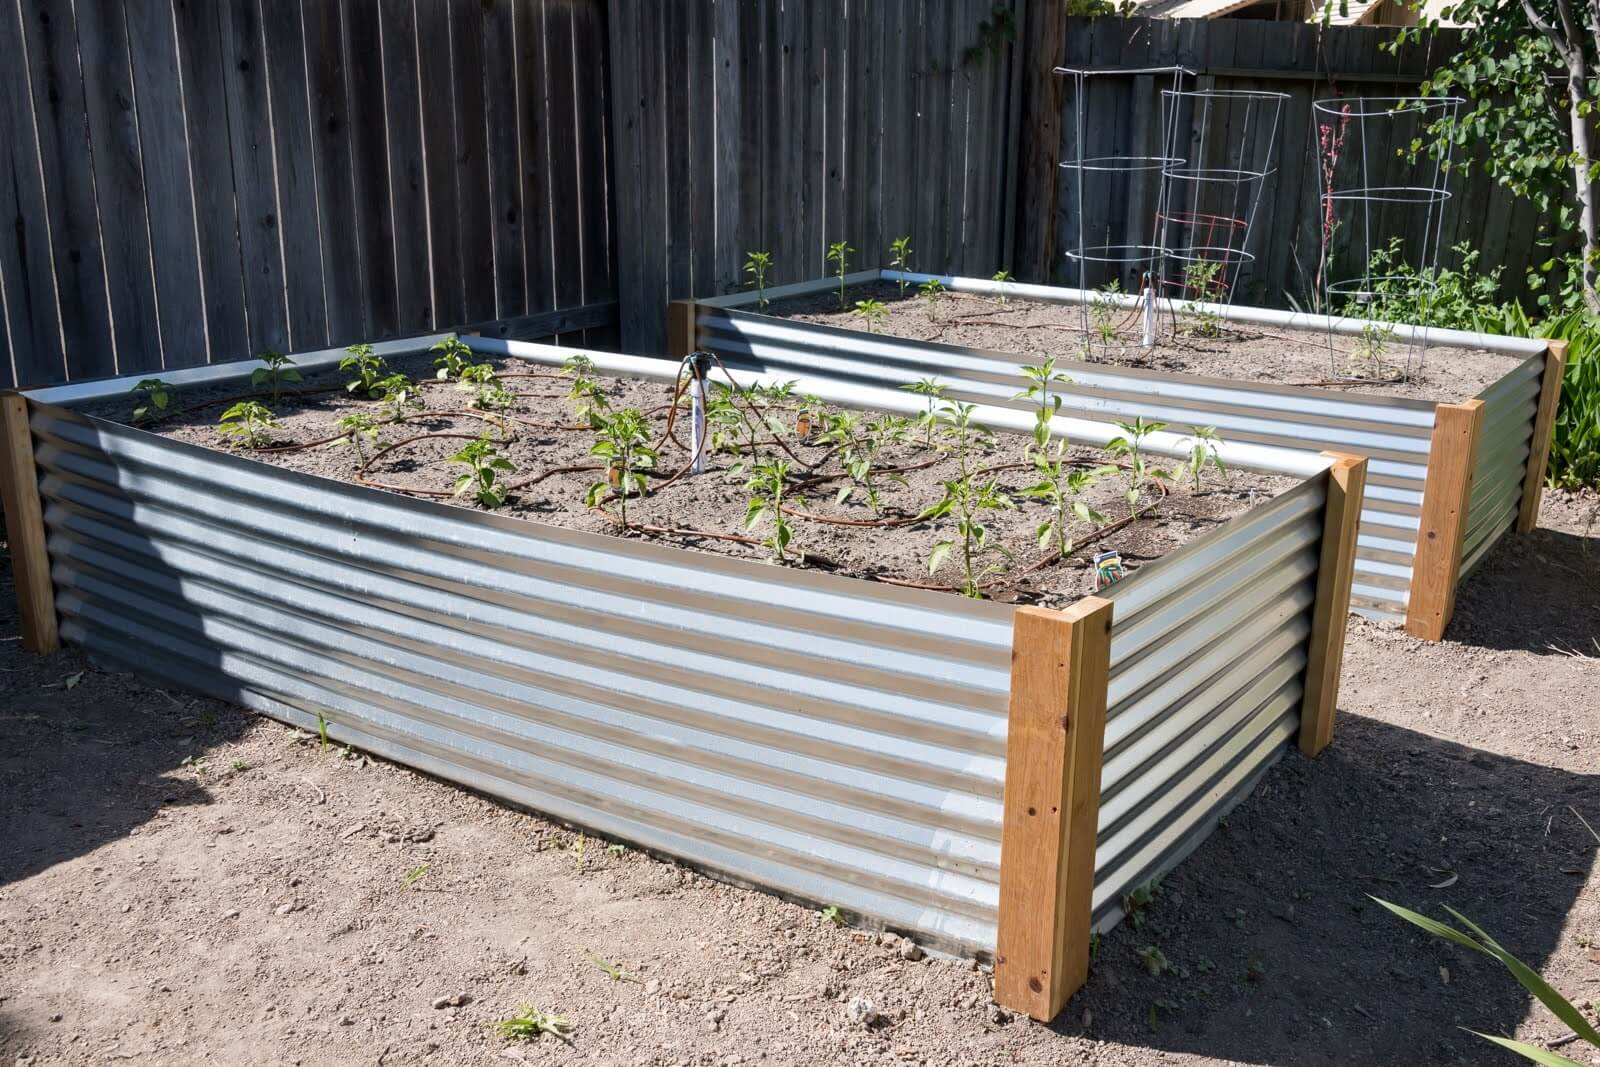 How to build a raised metal garden bed